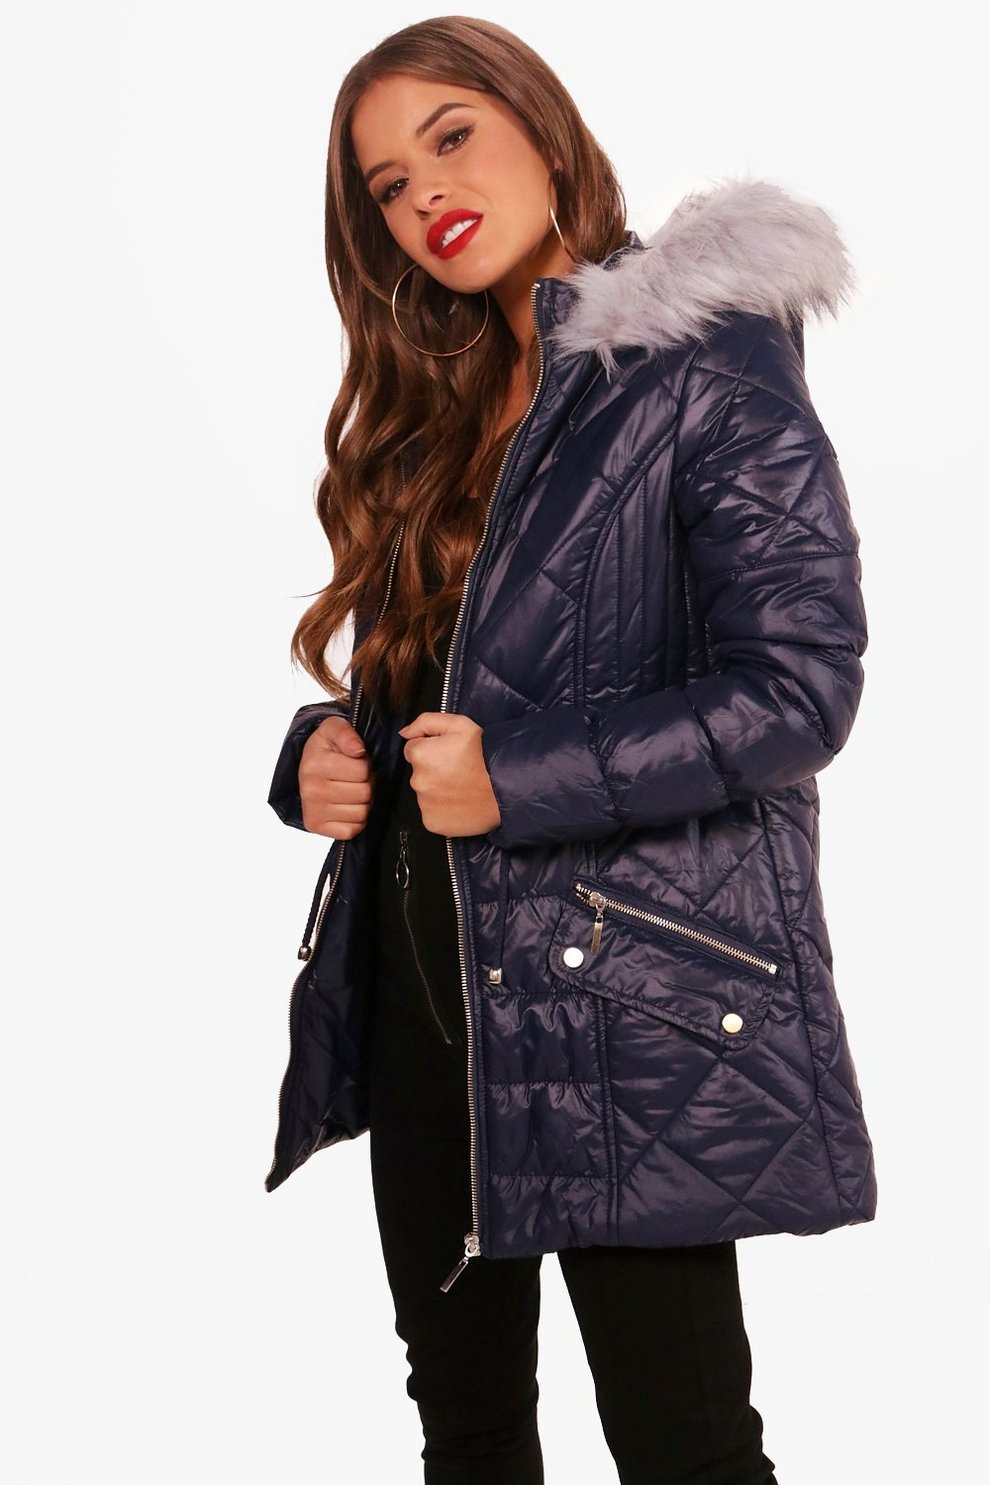 Boohoo Petite Padded Faux Fur Hooded Coat Sale In China Cheap Sneakernews Outlet Deals 1uV7LzxxQ